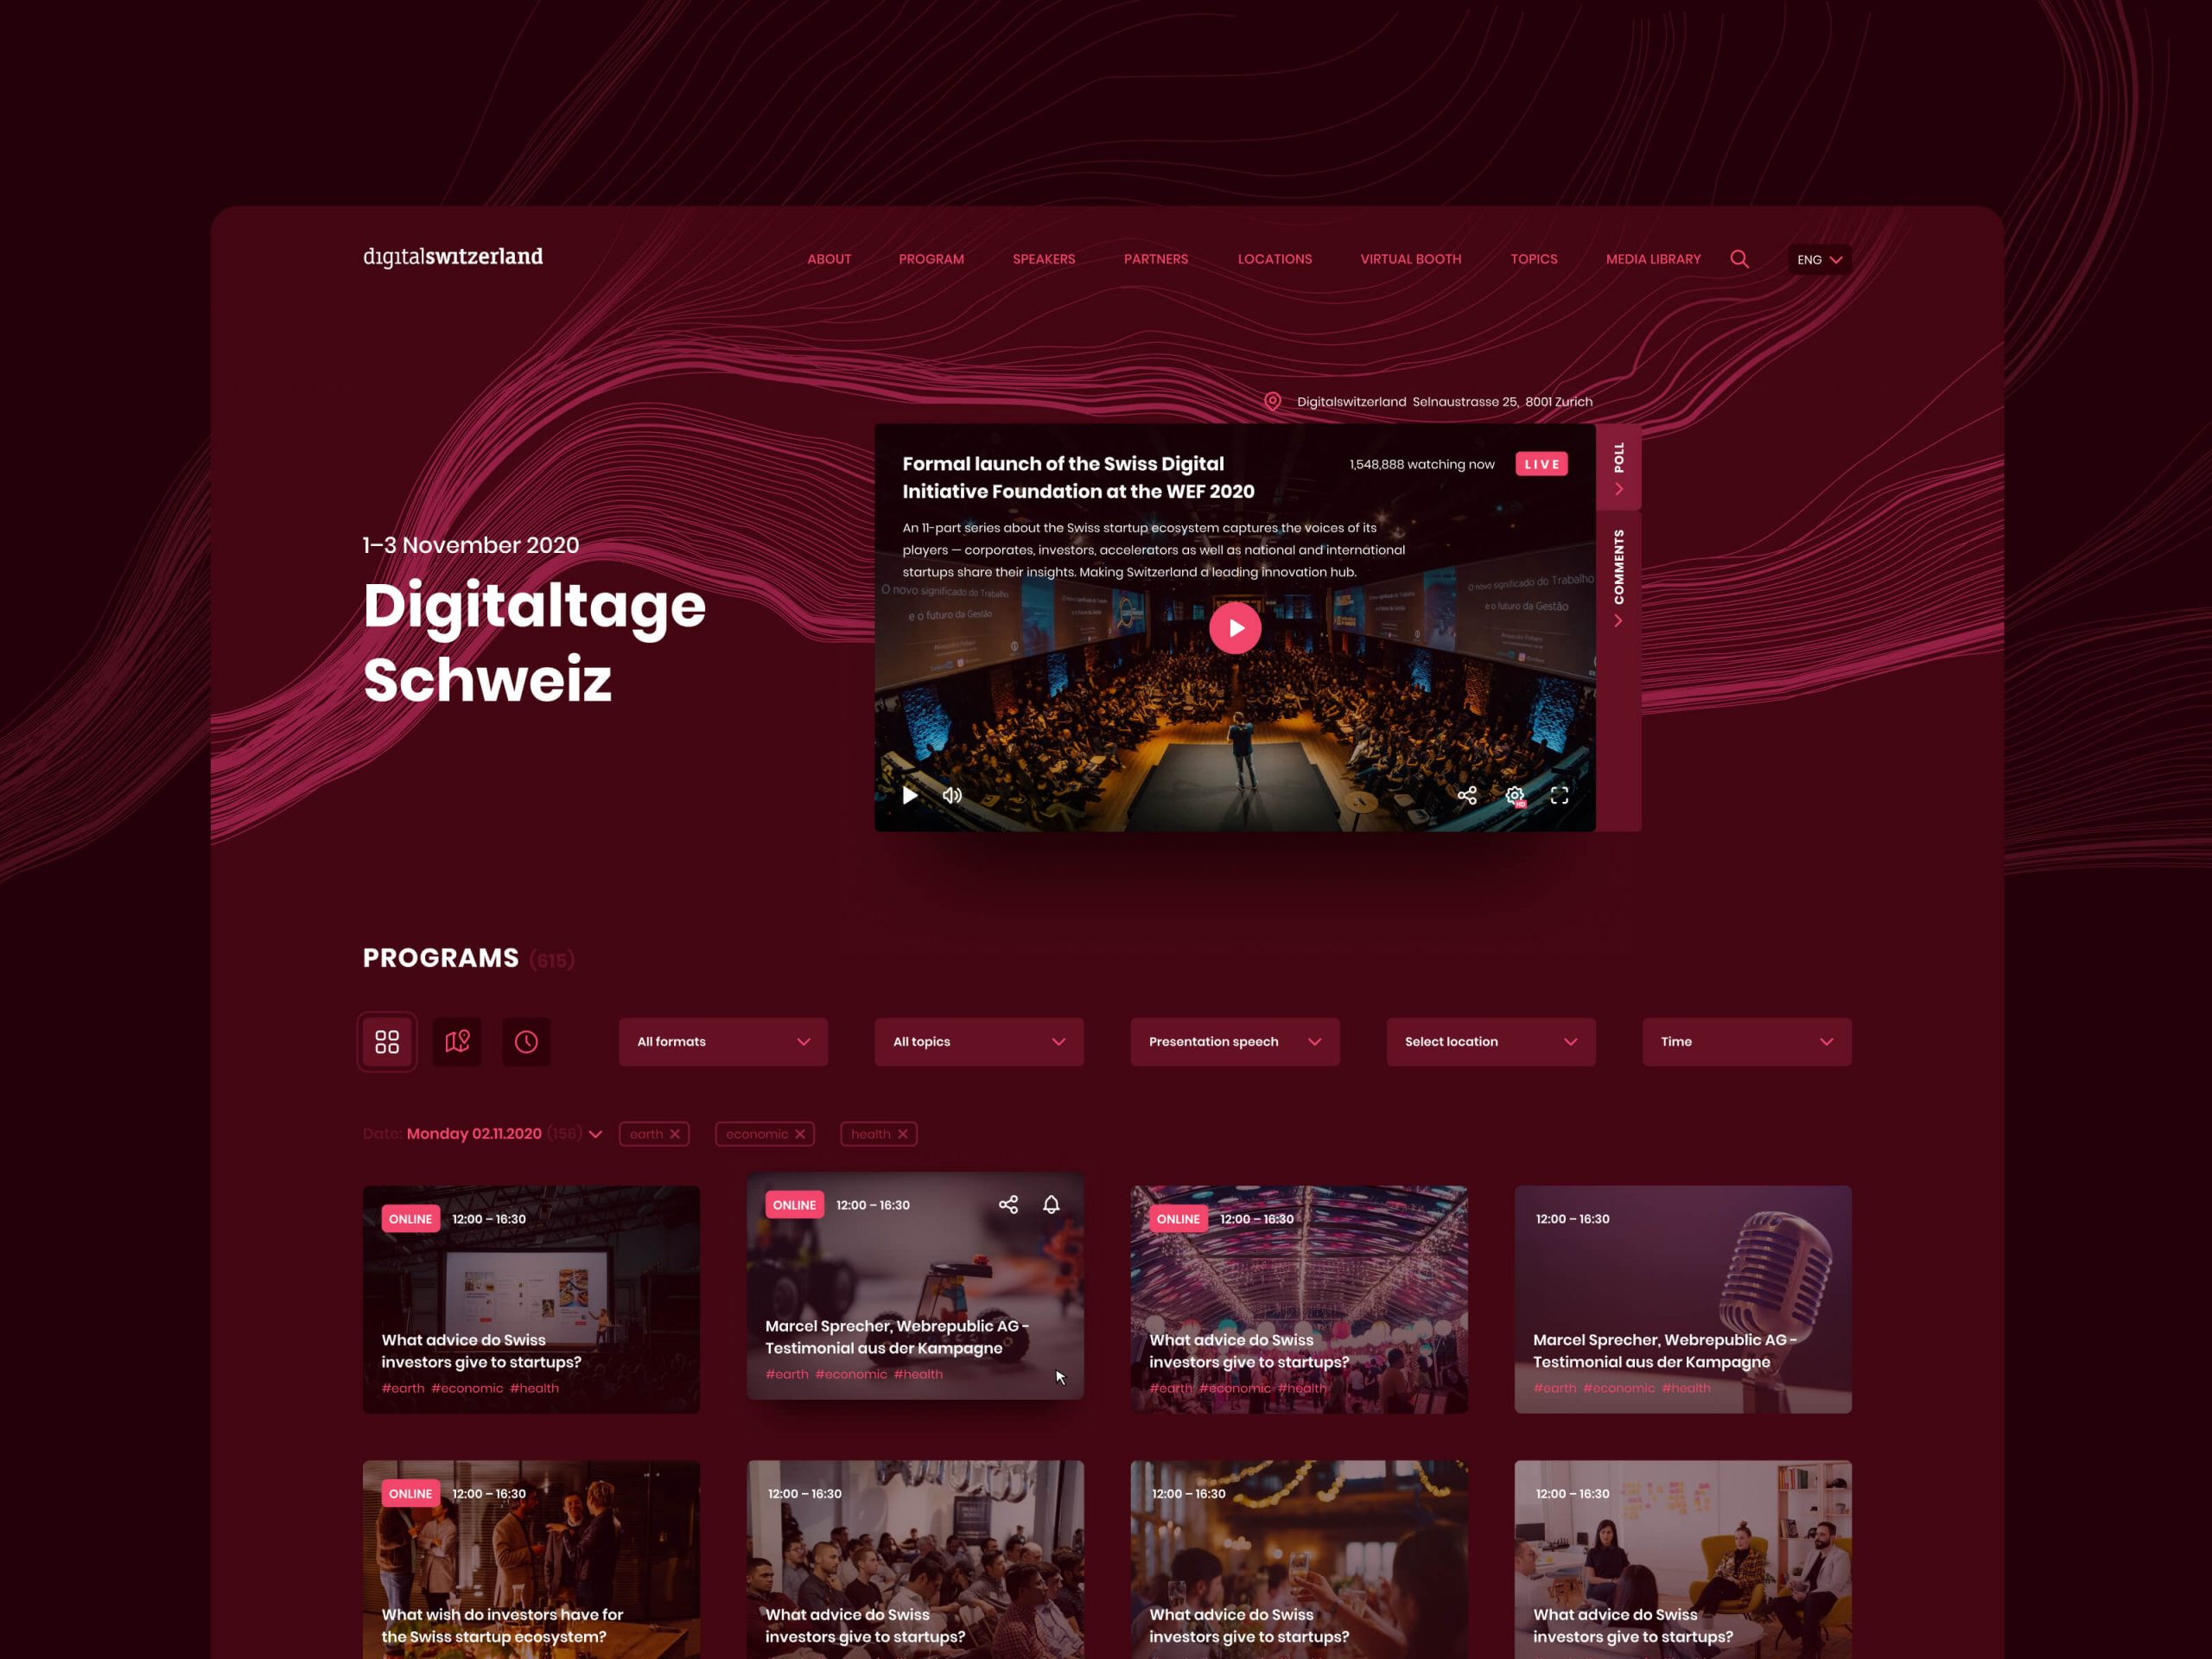 Digital Switzerland Website Page Design